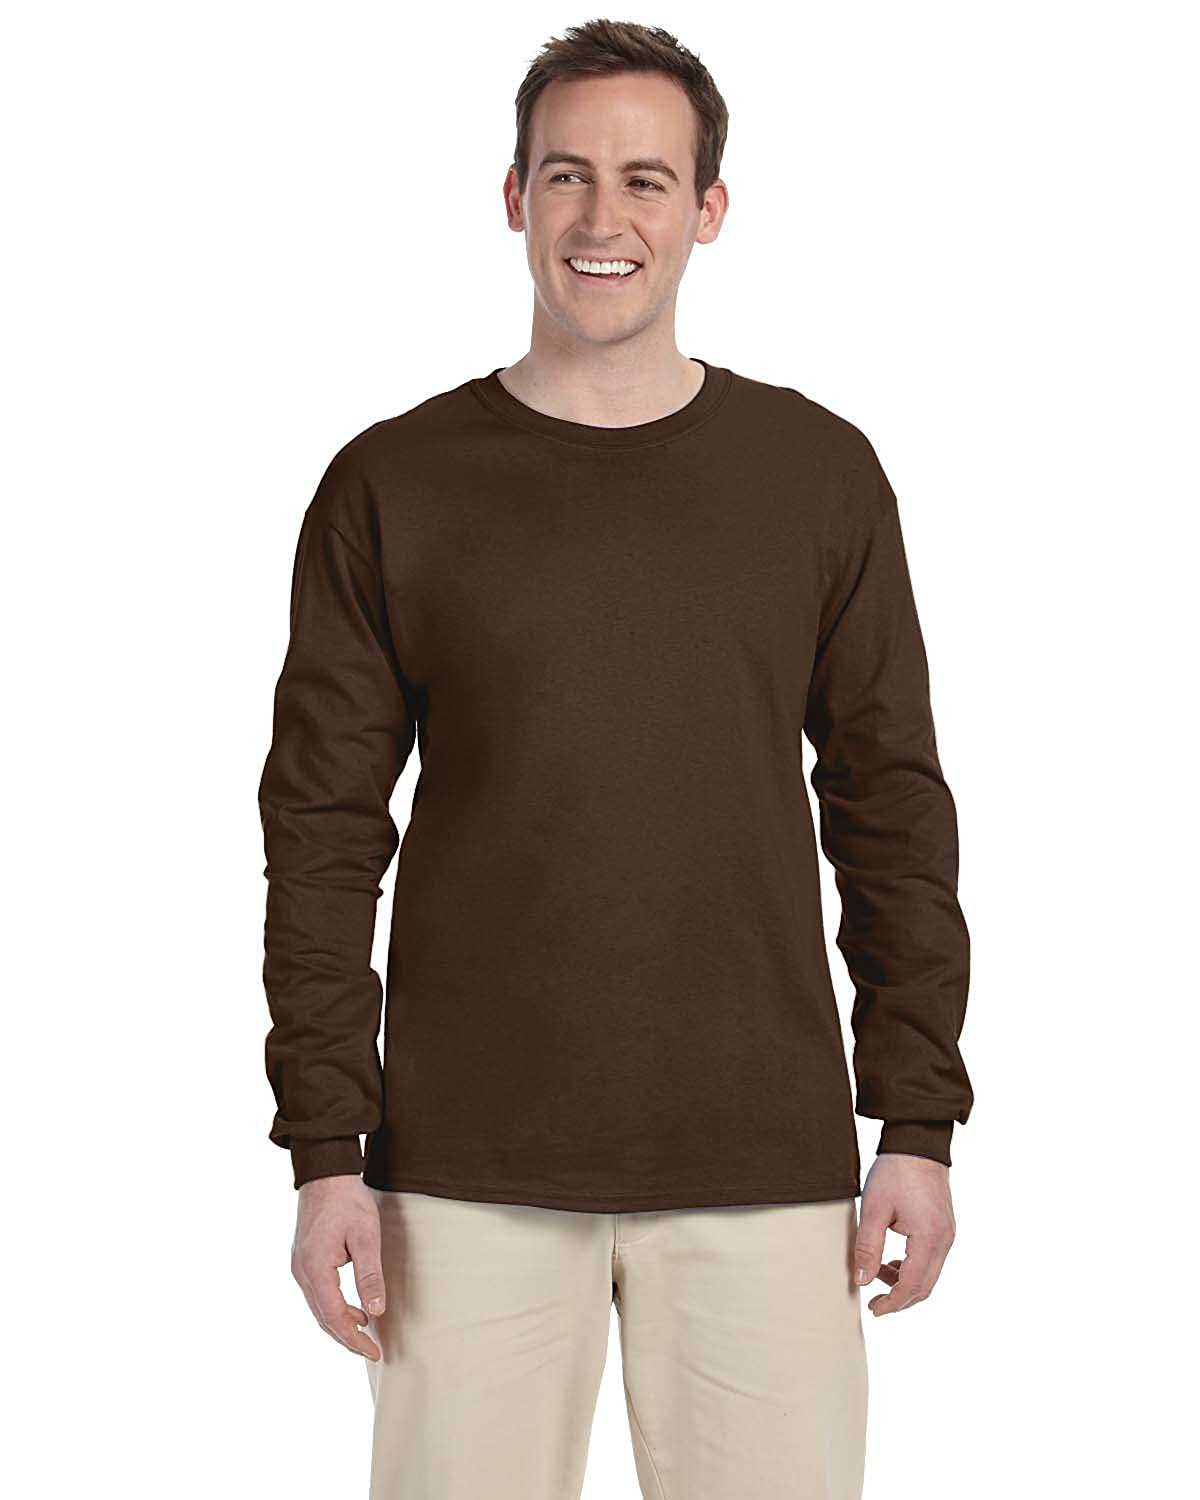 2 Pack FoTL 4930 Mens Heavy Cotton Long-Sleeve Tee 3XL Chocolate